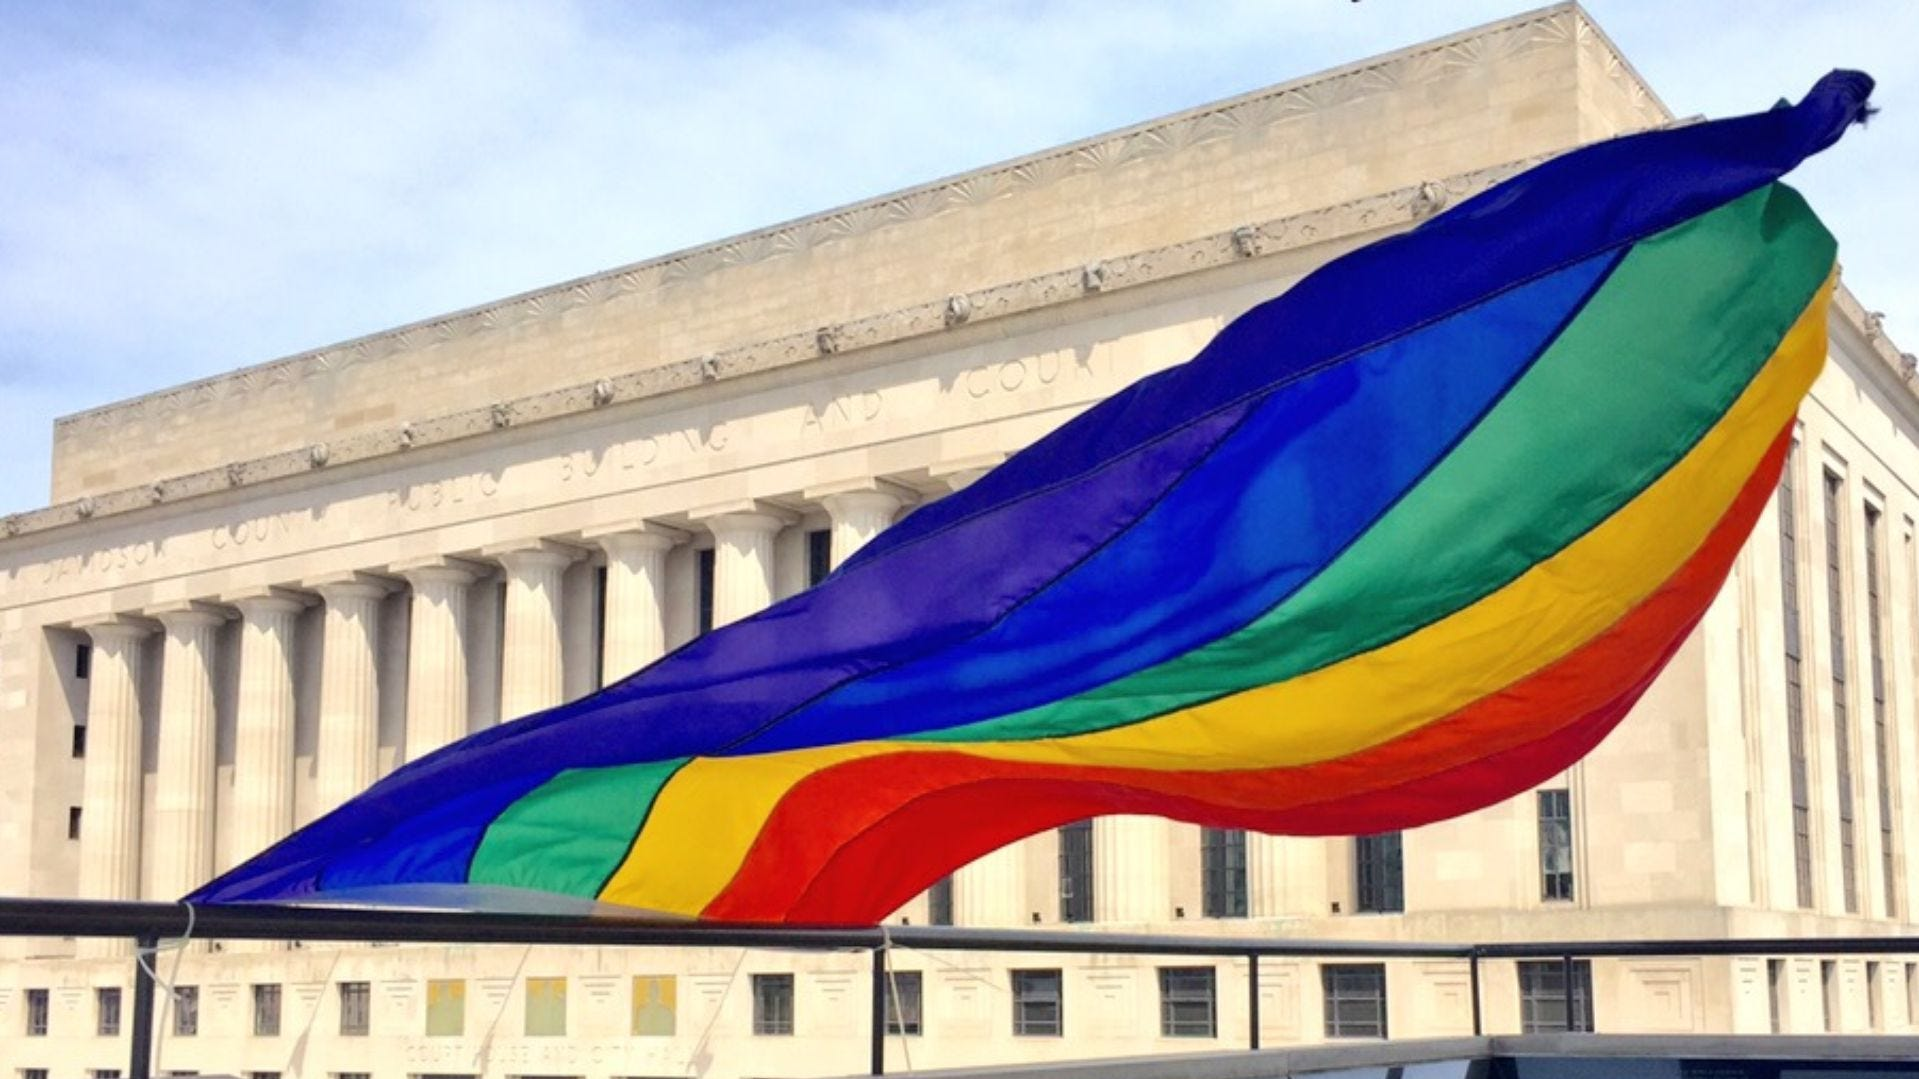 Warby Parker, IKEA, Hilton say bills affecting LGBT individuals harm business